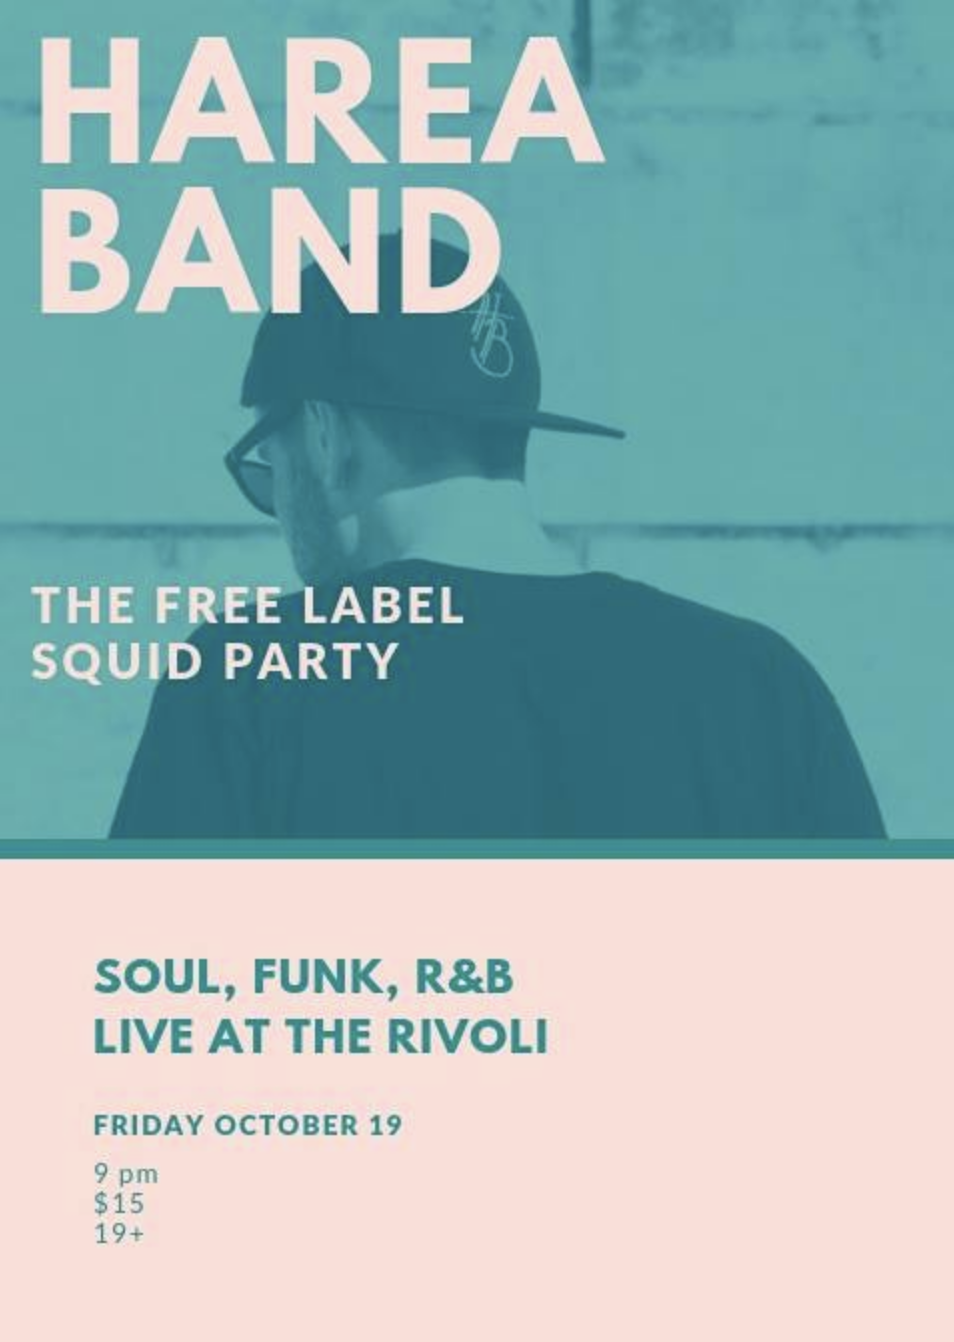 AREA BANDw/ SQUID PARTYTHE FREE LABEL - COVER: $15MORE INFO